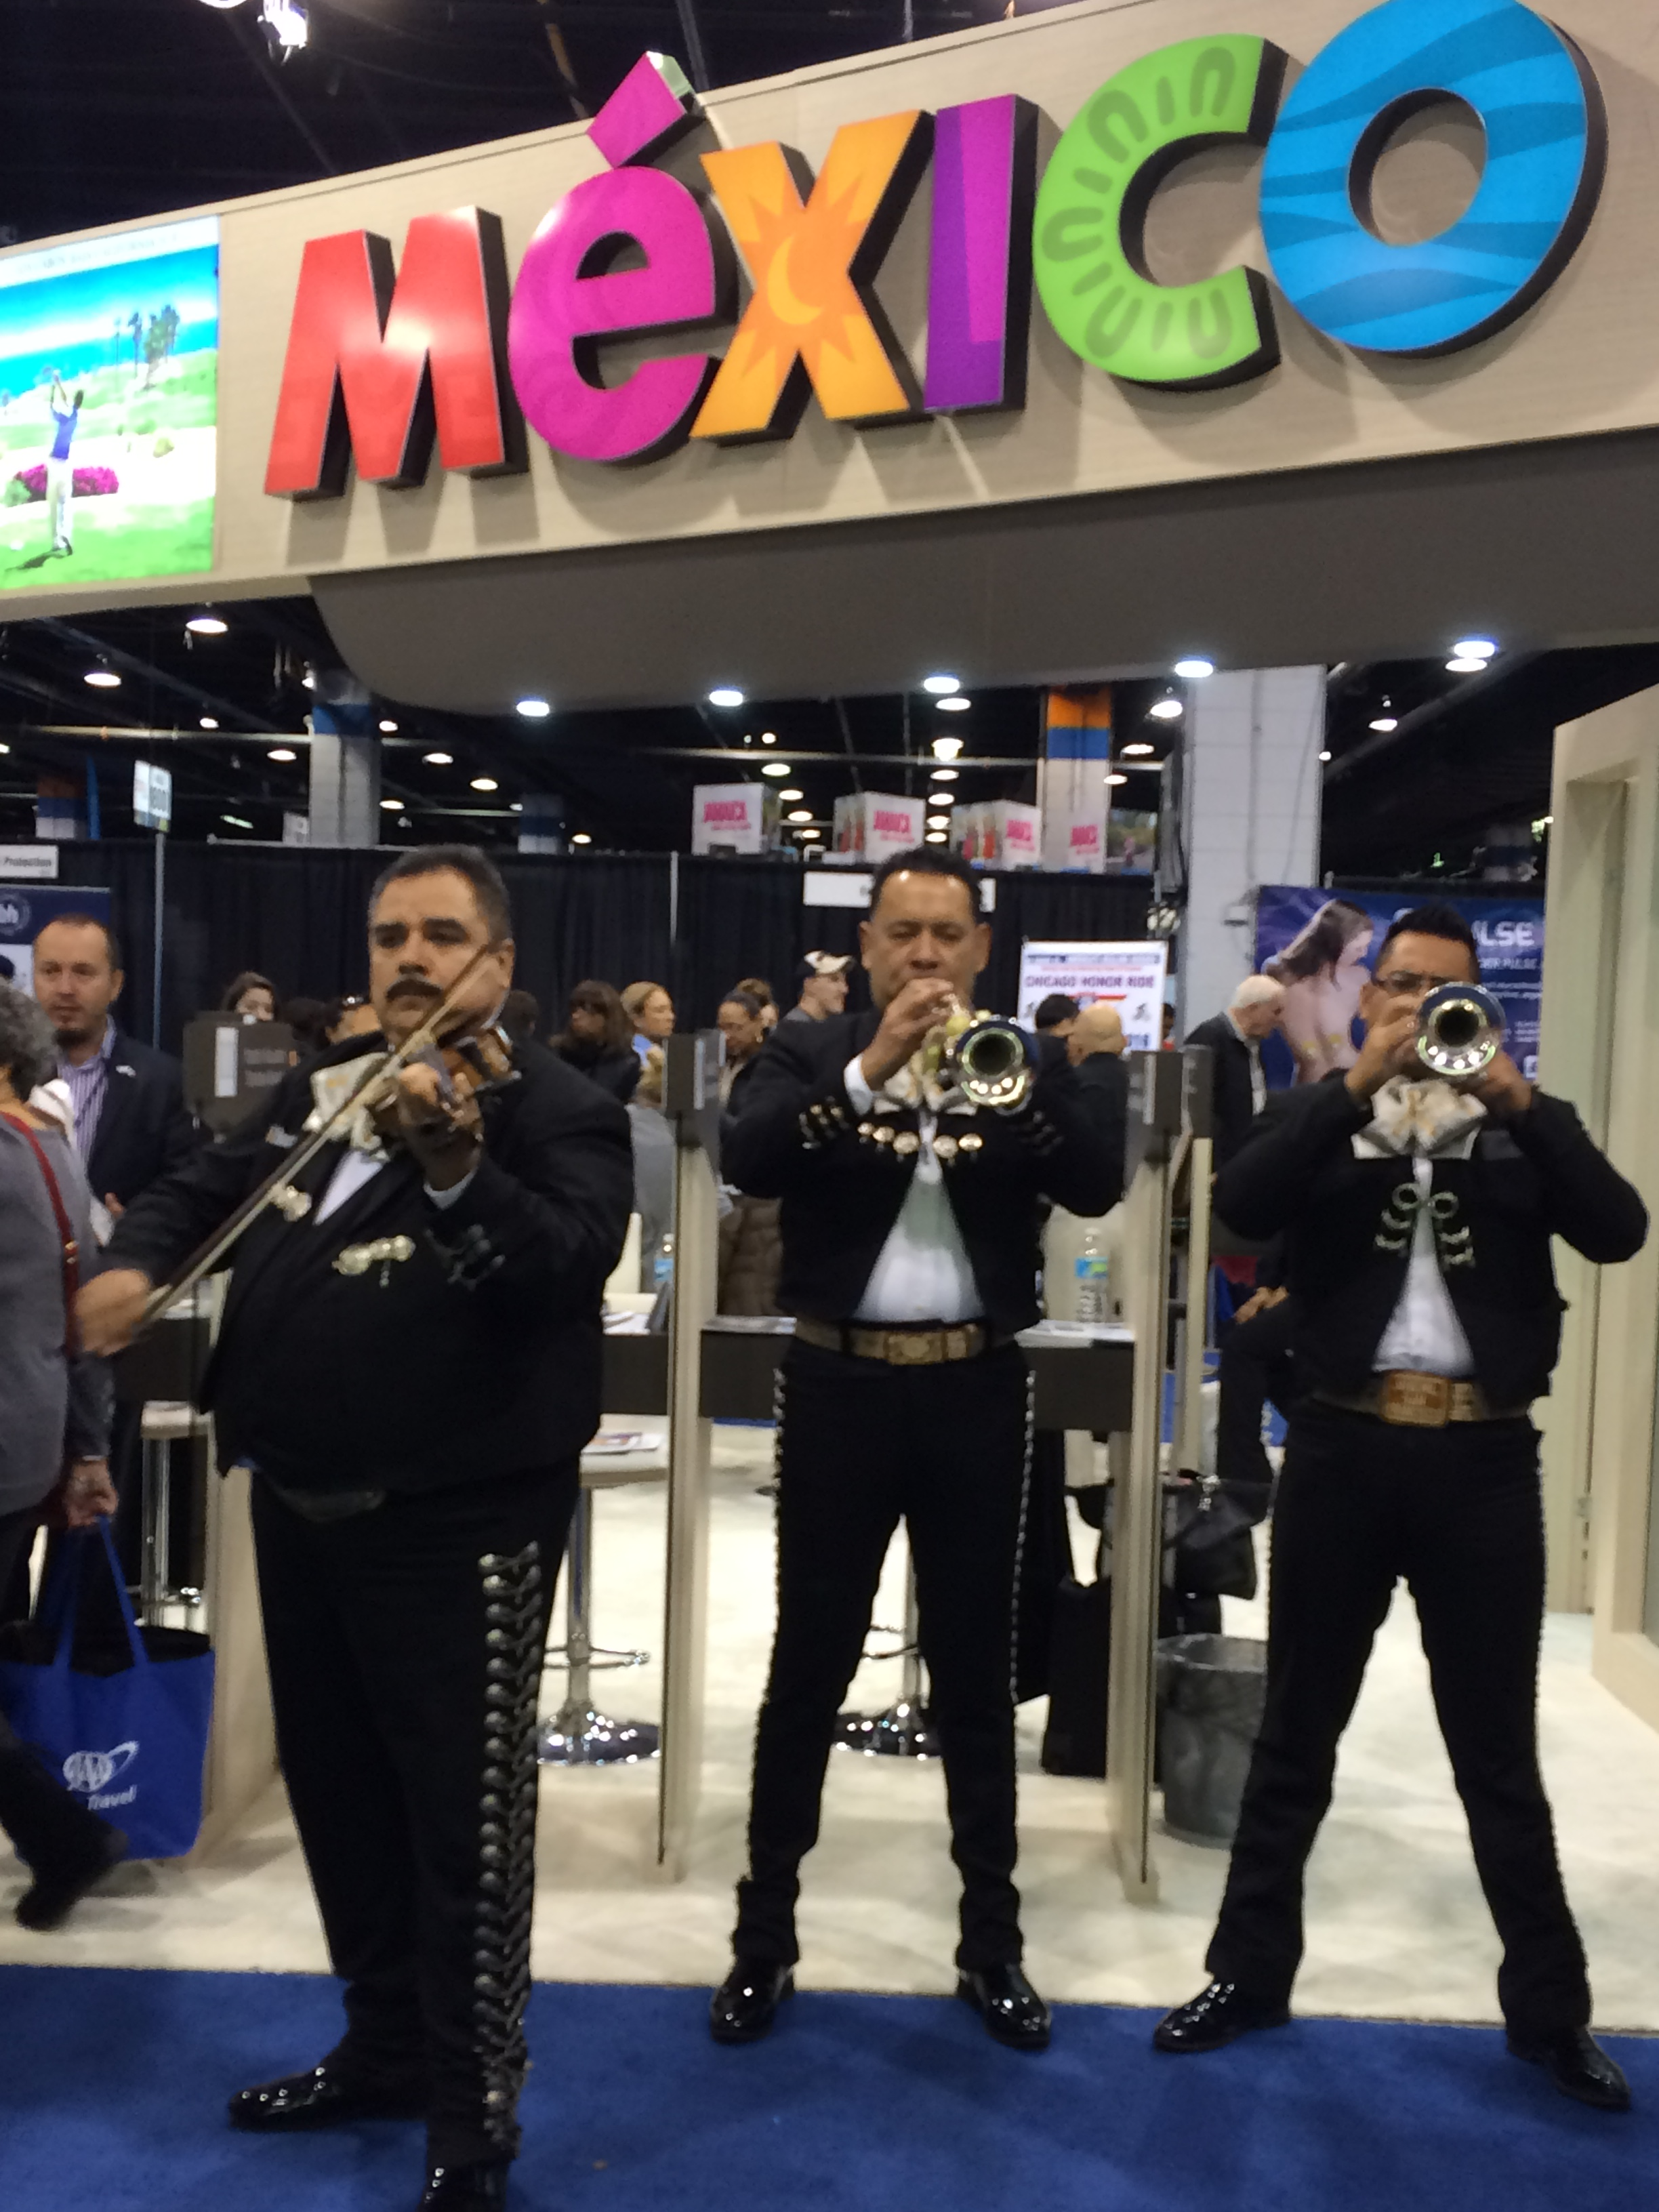 Mariachis at the Chicago Travel & Adventure Show, 2016.